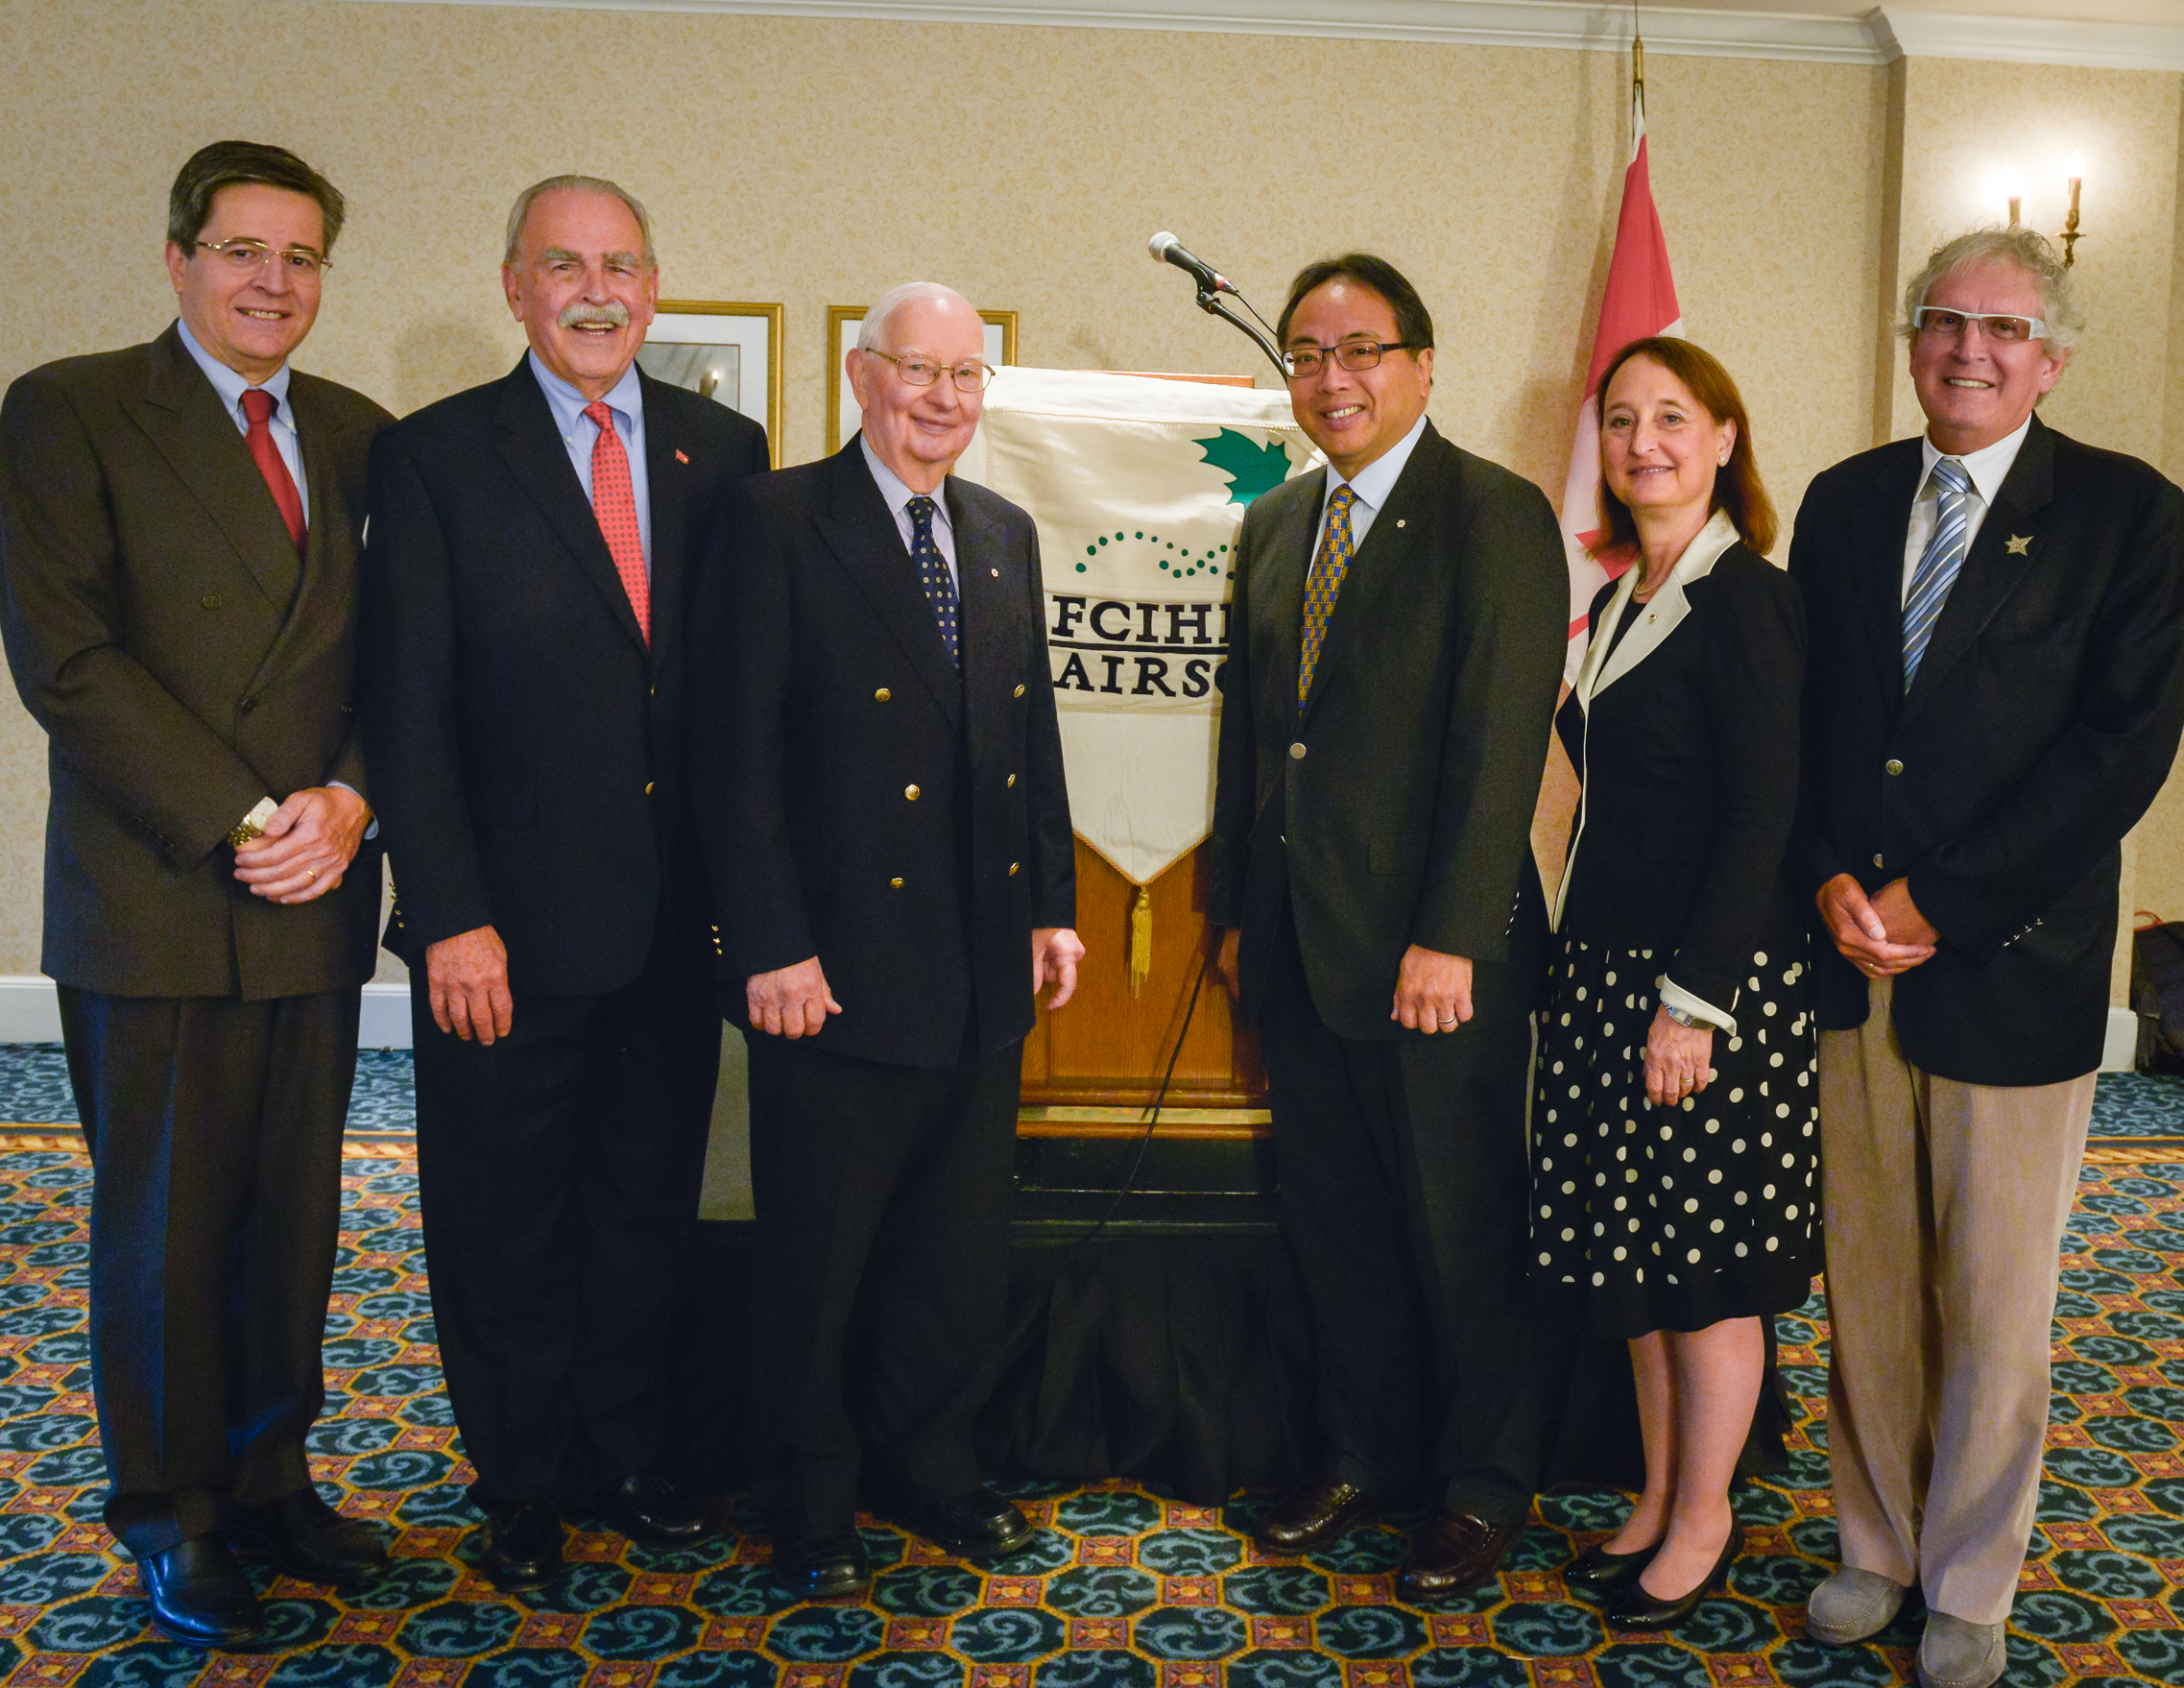 Left to Right: Dr. Thierry Mesana, President and CEO, U Ottawa Heart Institute; Dr. Aubie Angel, President, Friends of CIHR; Dr. Henry G. Friesen, Distinguished Professor Emeritus, U Manitoba; Dr. Lap-Chee Tsui, 2014 Friesen Prizewinner; Dr. Rose Goldstein, Vice-Principal (Research and International Relations), McGill; Dr. Bruce McManus, VP, FCIHR.